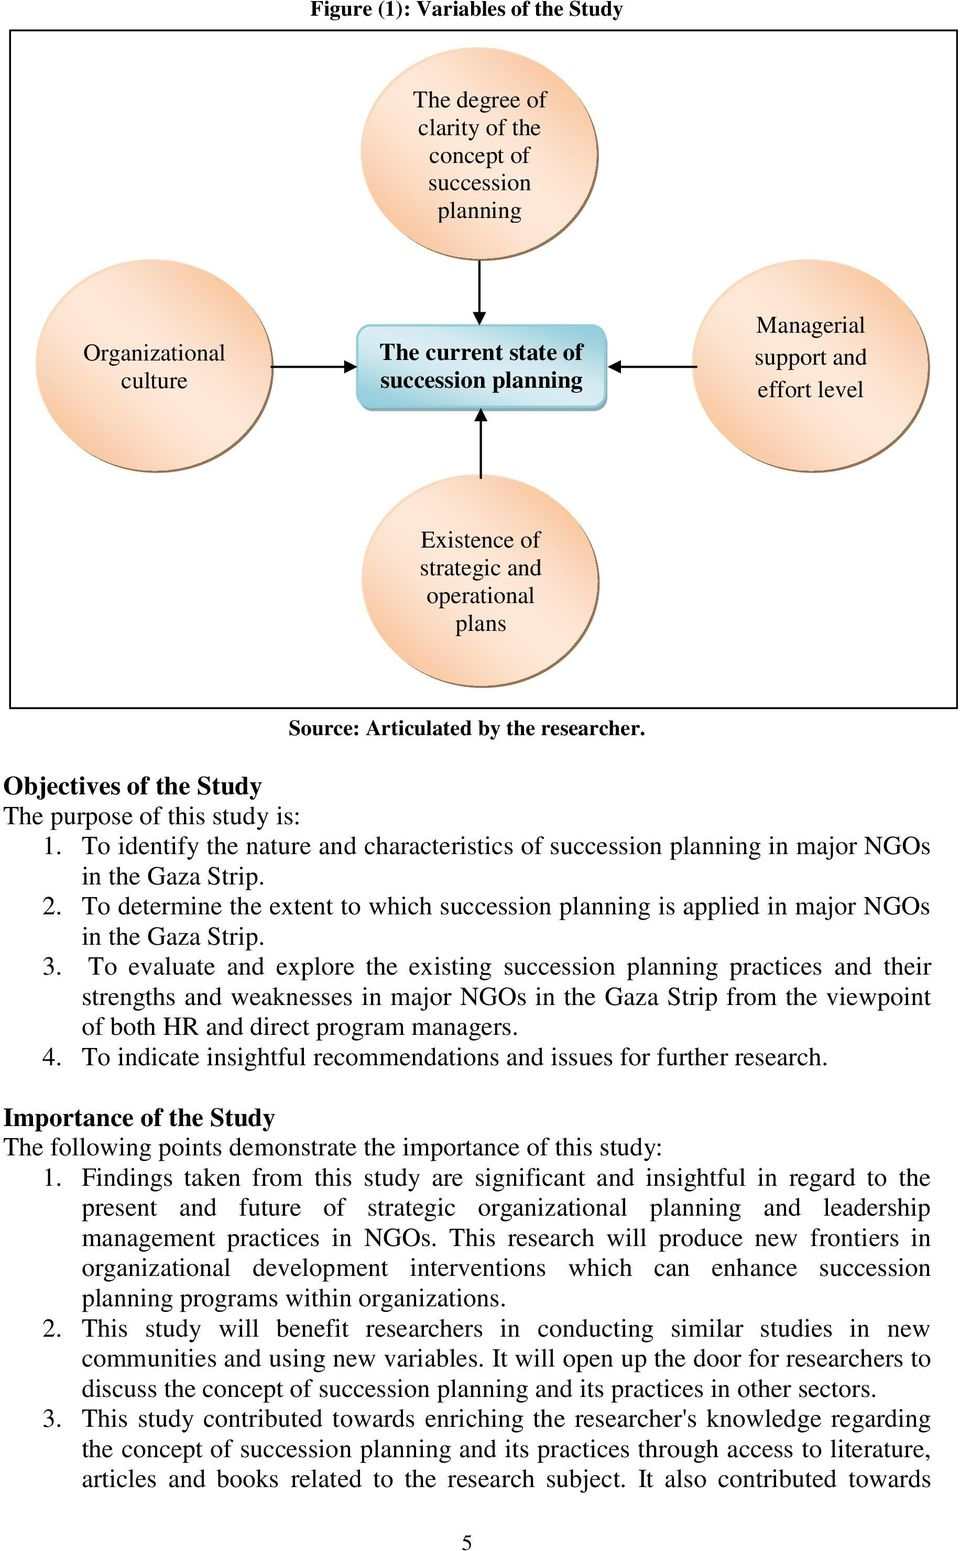 To identify the nature and characteristics of succession planning in major NGOs in the Gaza Strip. 2. To determine the extent to which succession planning is applied in major NGOs in the Gaza Strip.